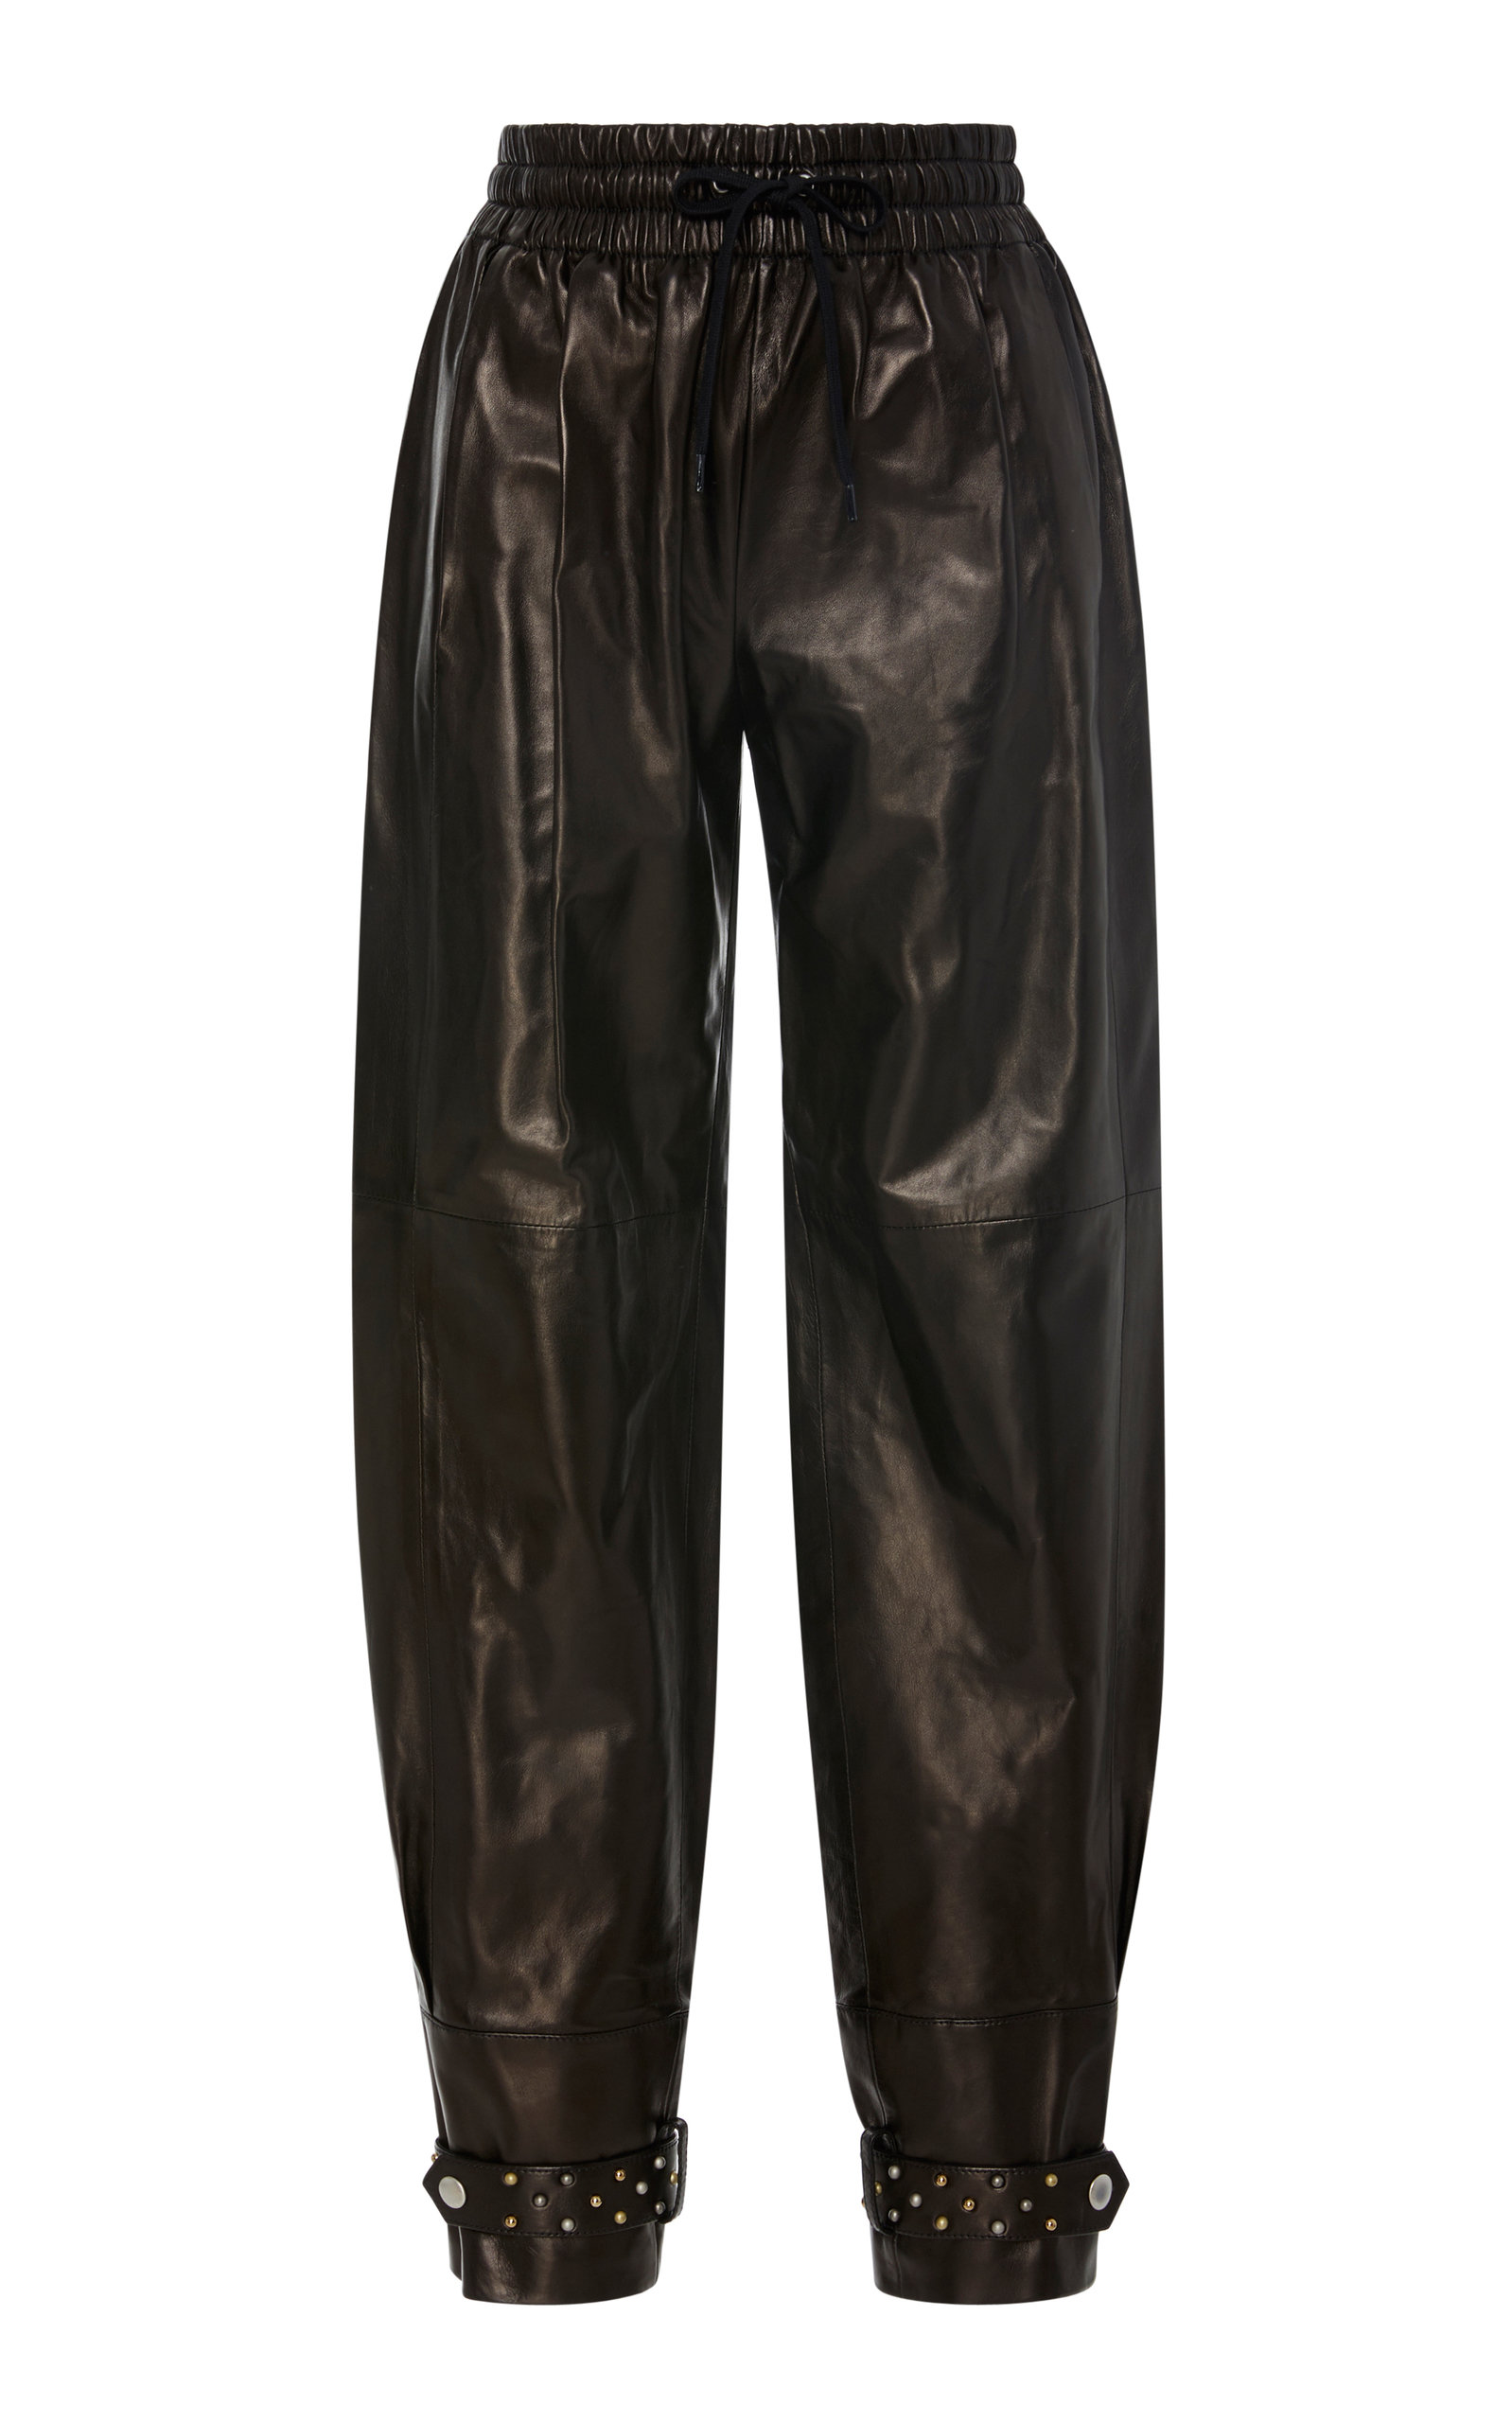 GIVENCHY PEARL-EMBELLISHED LEATHER TAPERED PANTS